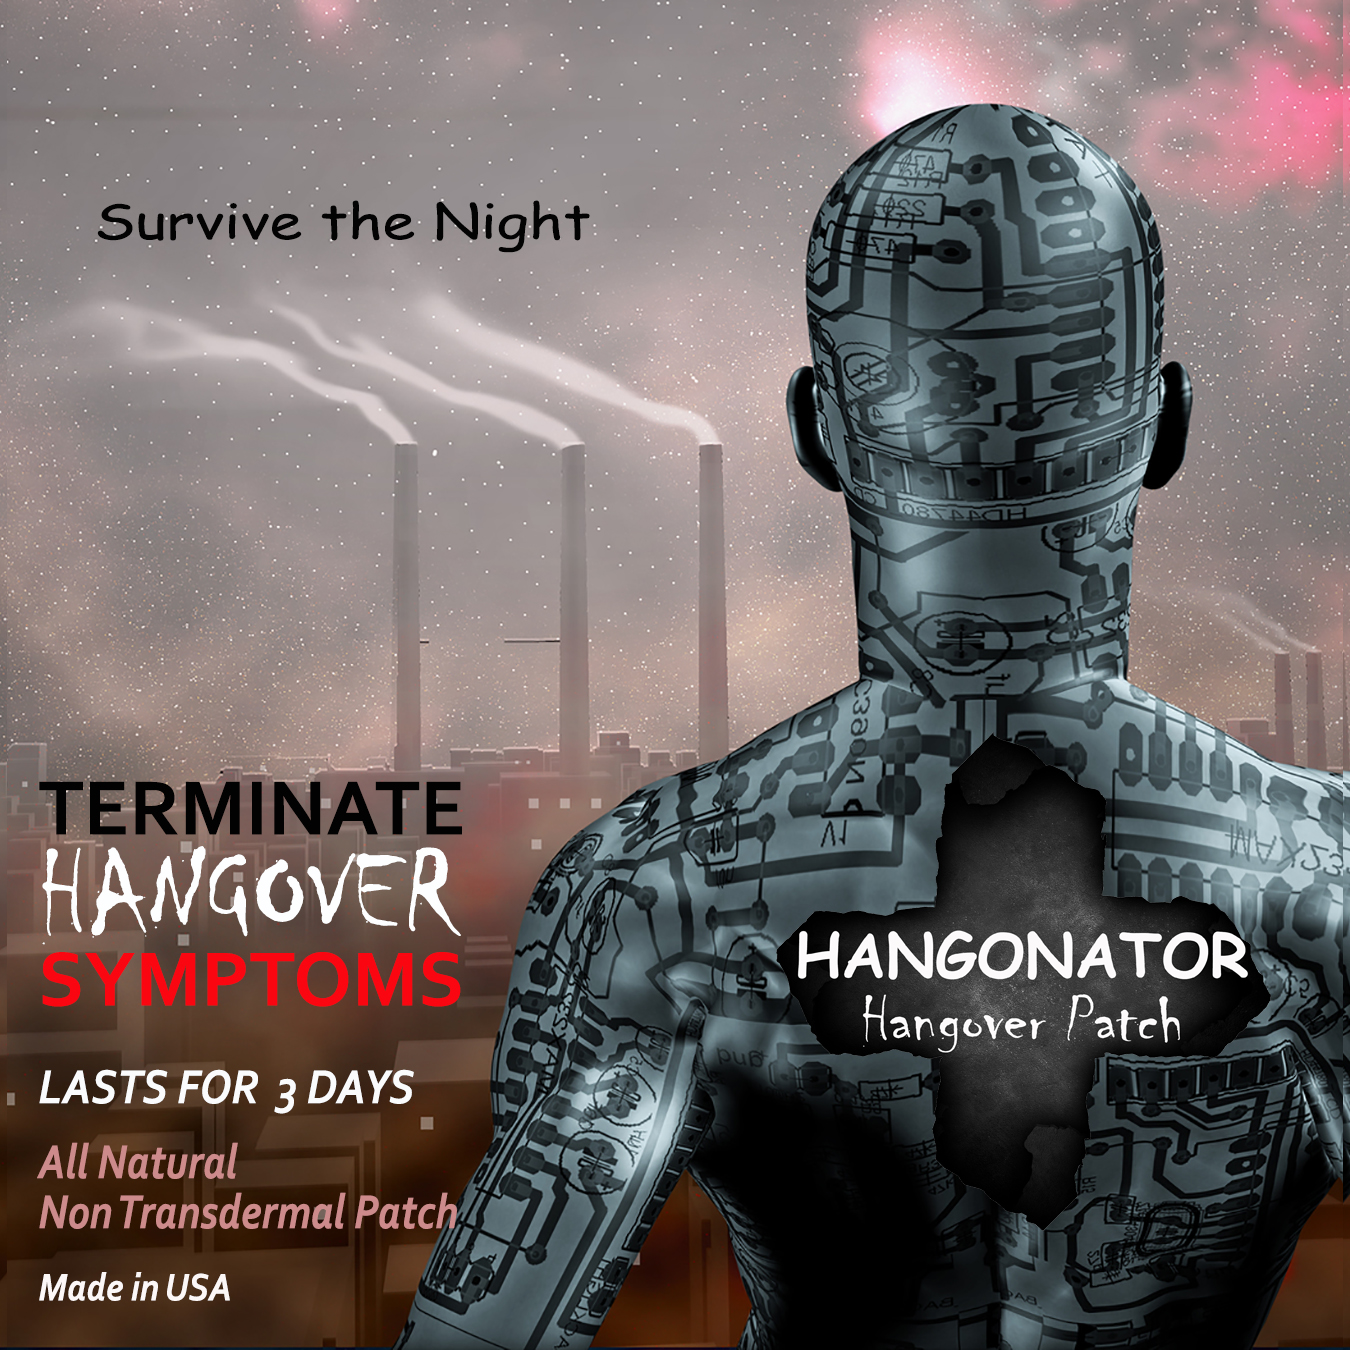 Hangover Remedy Startup HANGONATOR Sets To Raise US$ 110,000 through Crowdfunding Platform Indiegogo